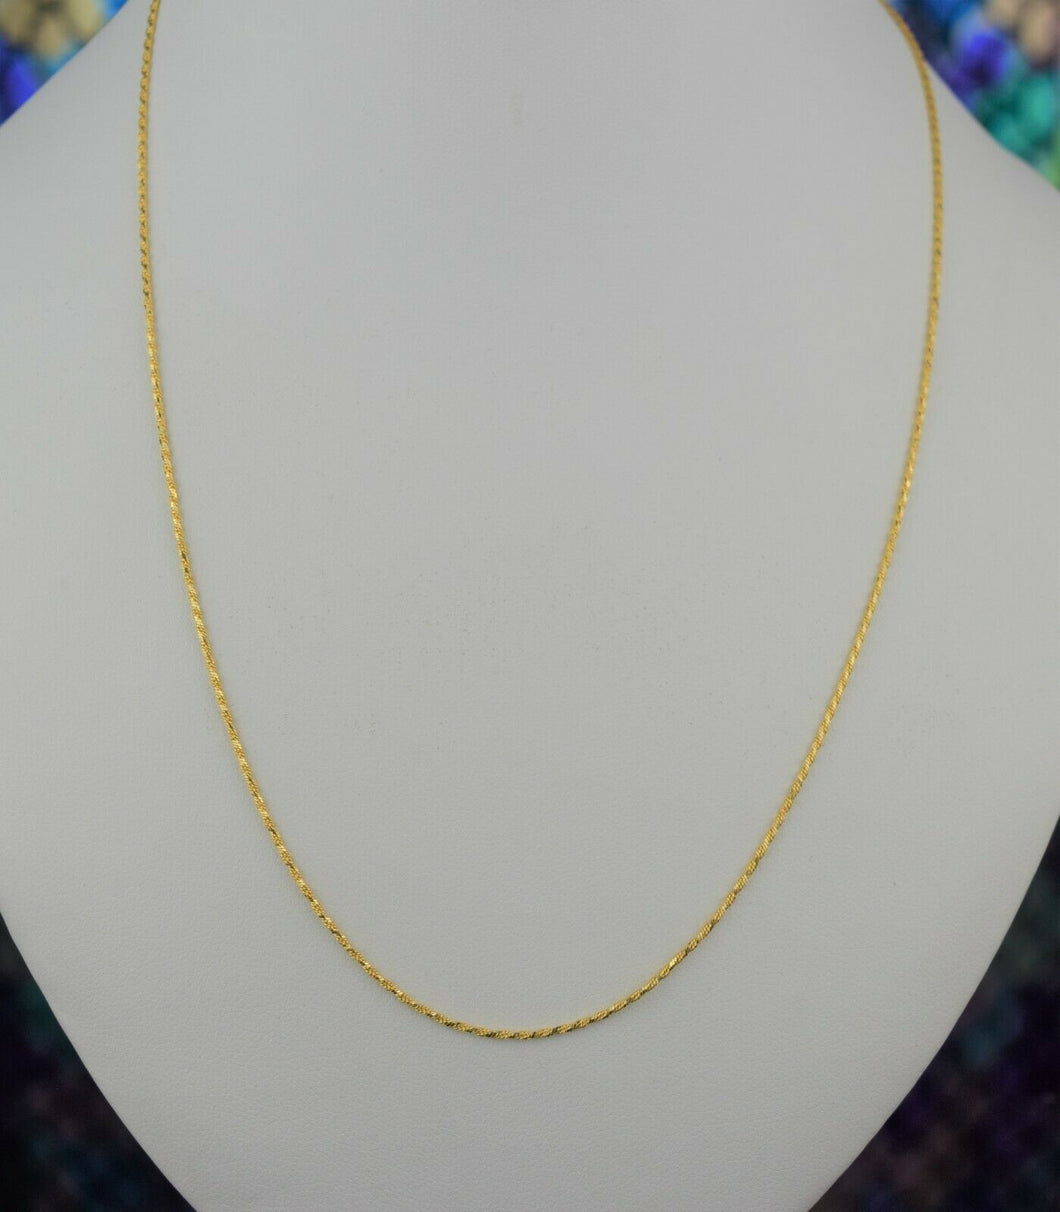 22k Chain Solid Gold Simple Elegant Thin Twist Link Design C075 - Royal Dubai Jewellers